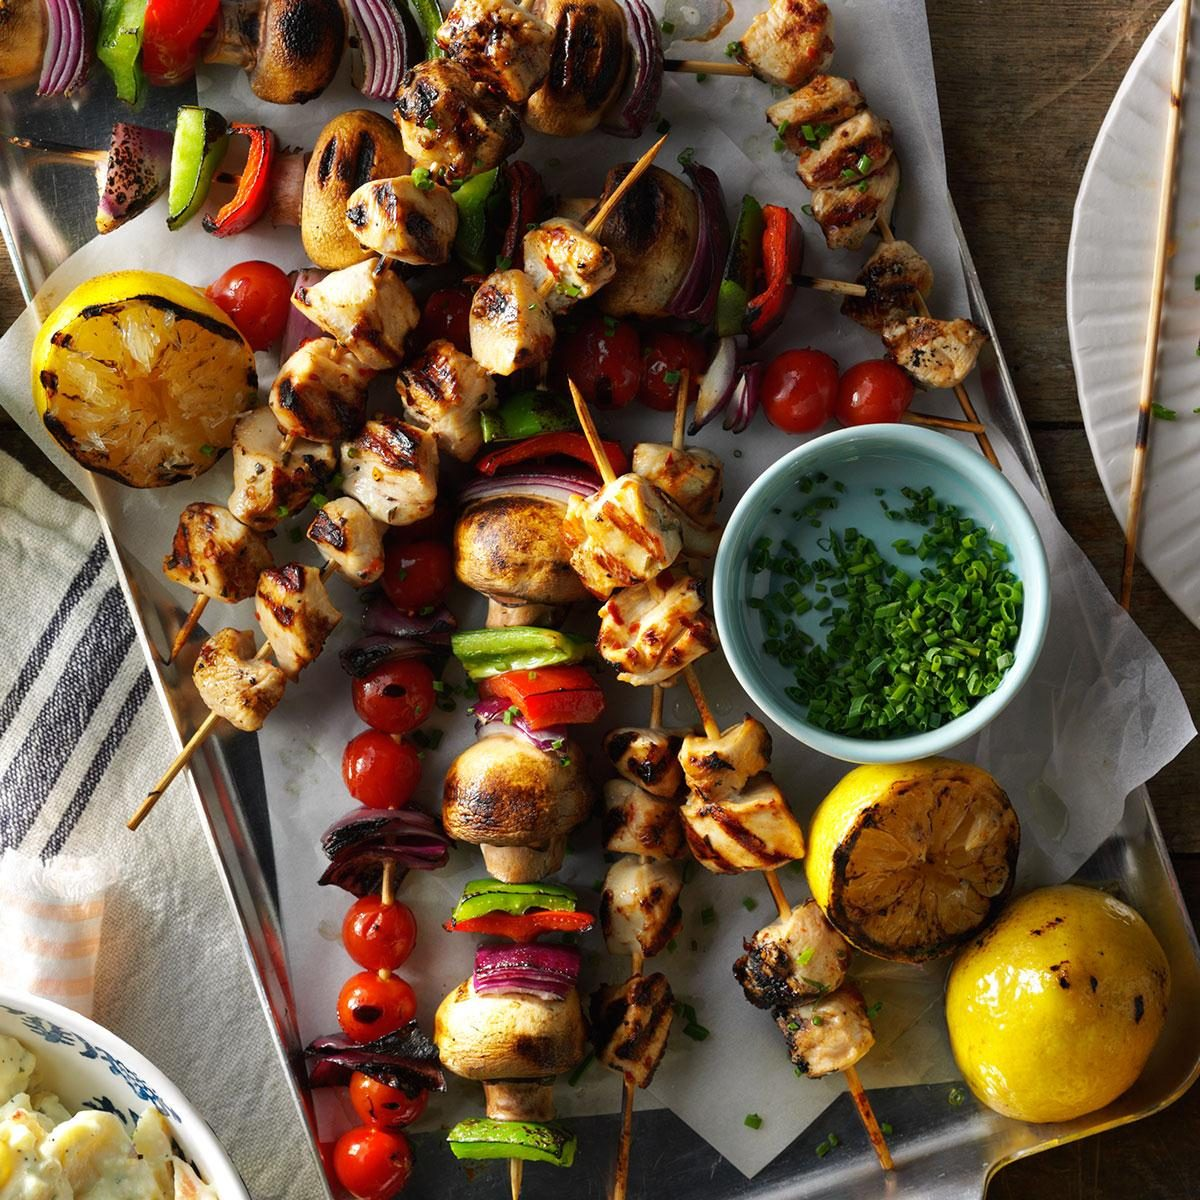 40 Grilled Mediterranean Diet Recipes